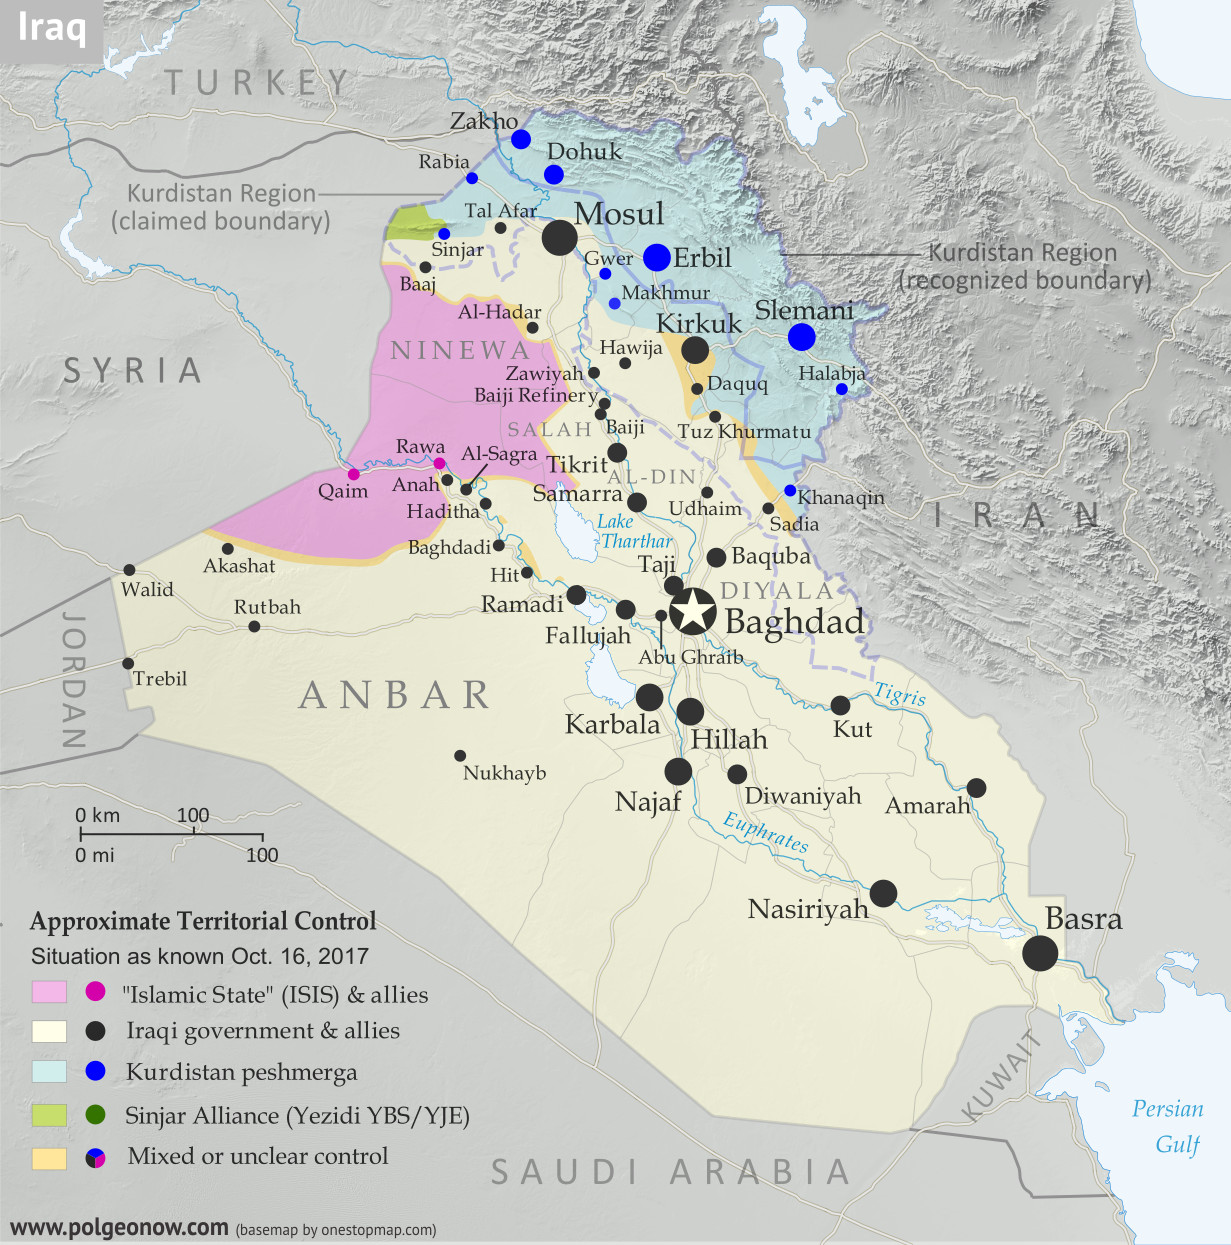 Detailed map of territorial control in Iraq as of October 16, 2017 after the recapture of Hawija and Tal Afar and government seizure of Kirkuk. including territory held by the so-called Islamic State (ISIS, ISIL), the Baghdad government, the Kurdistan Peshmerga, and the Yezidi Sinjar Alliance (YBS and YJE). Colorblind accessible.